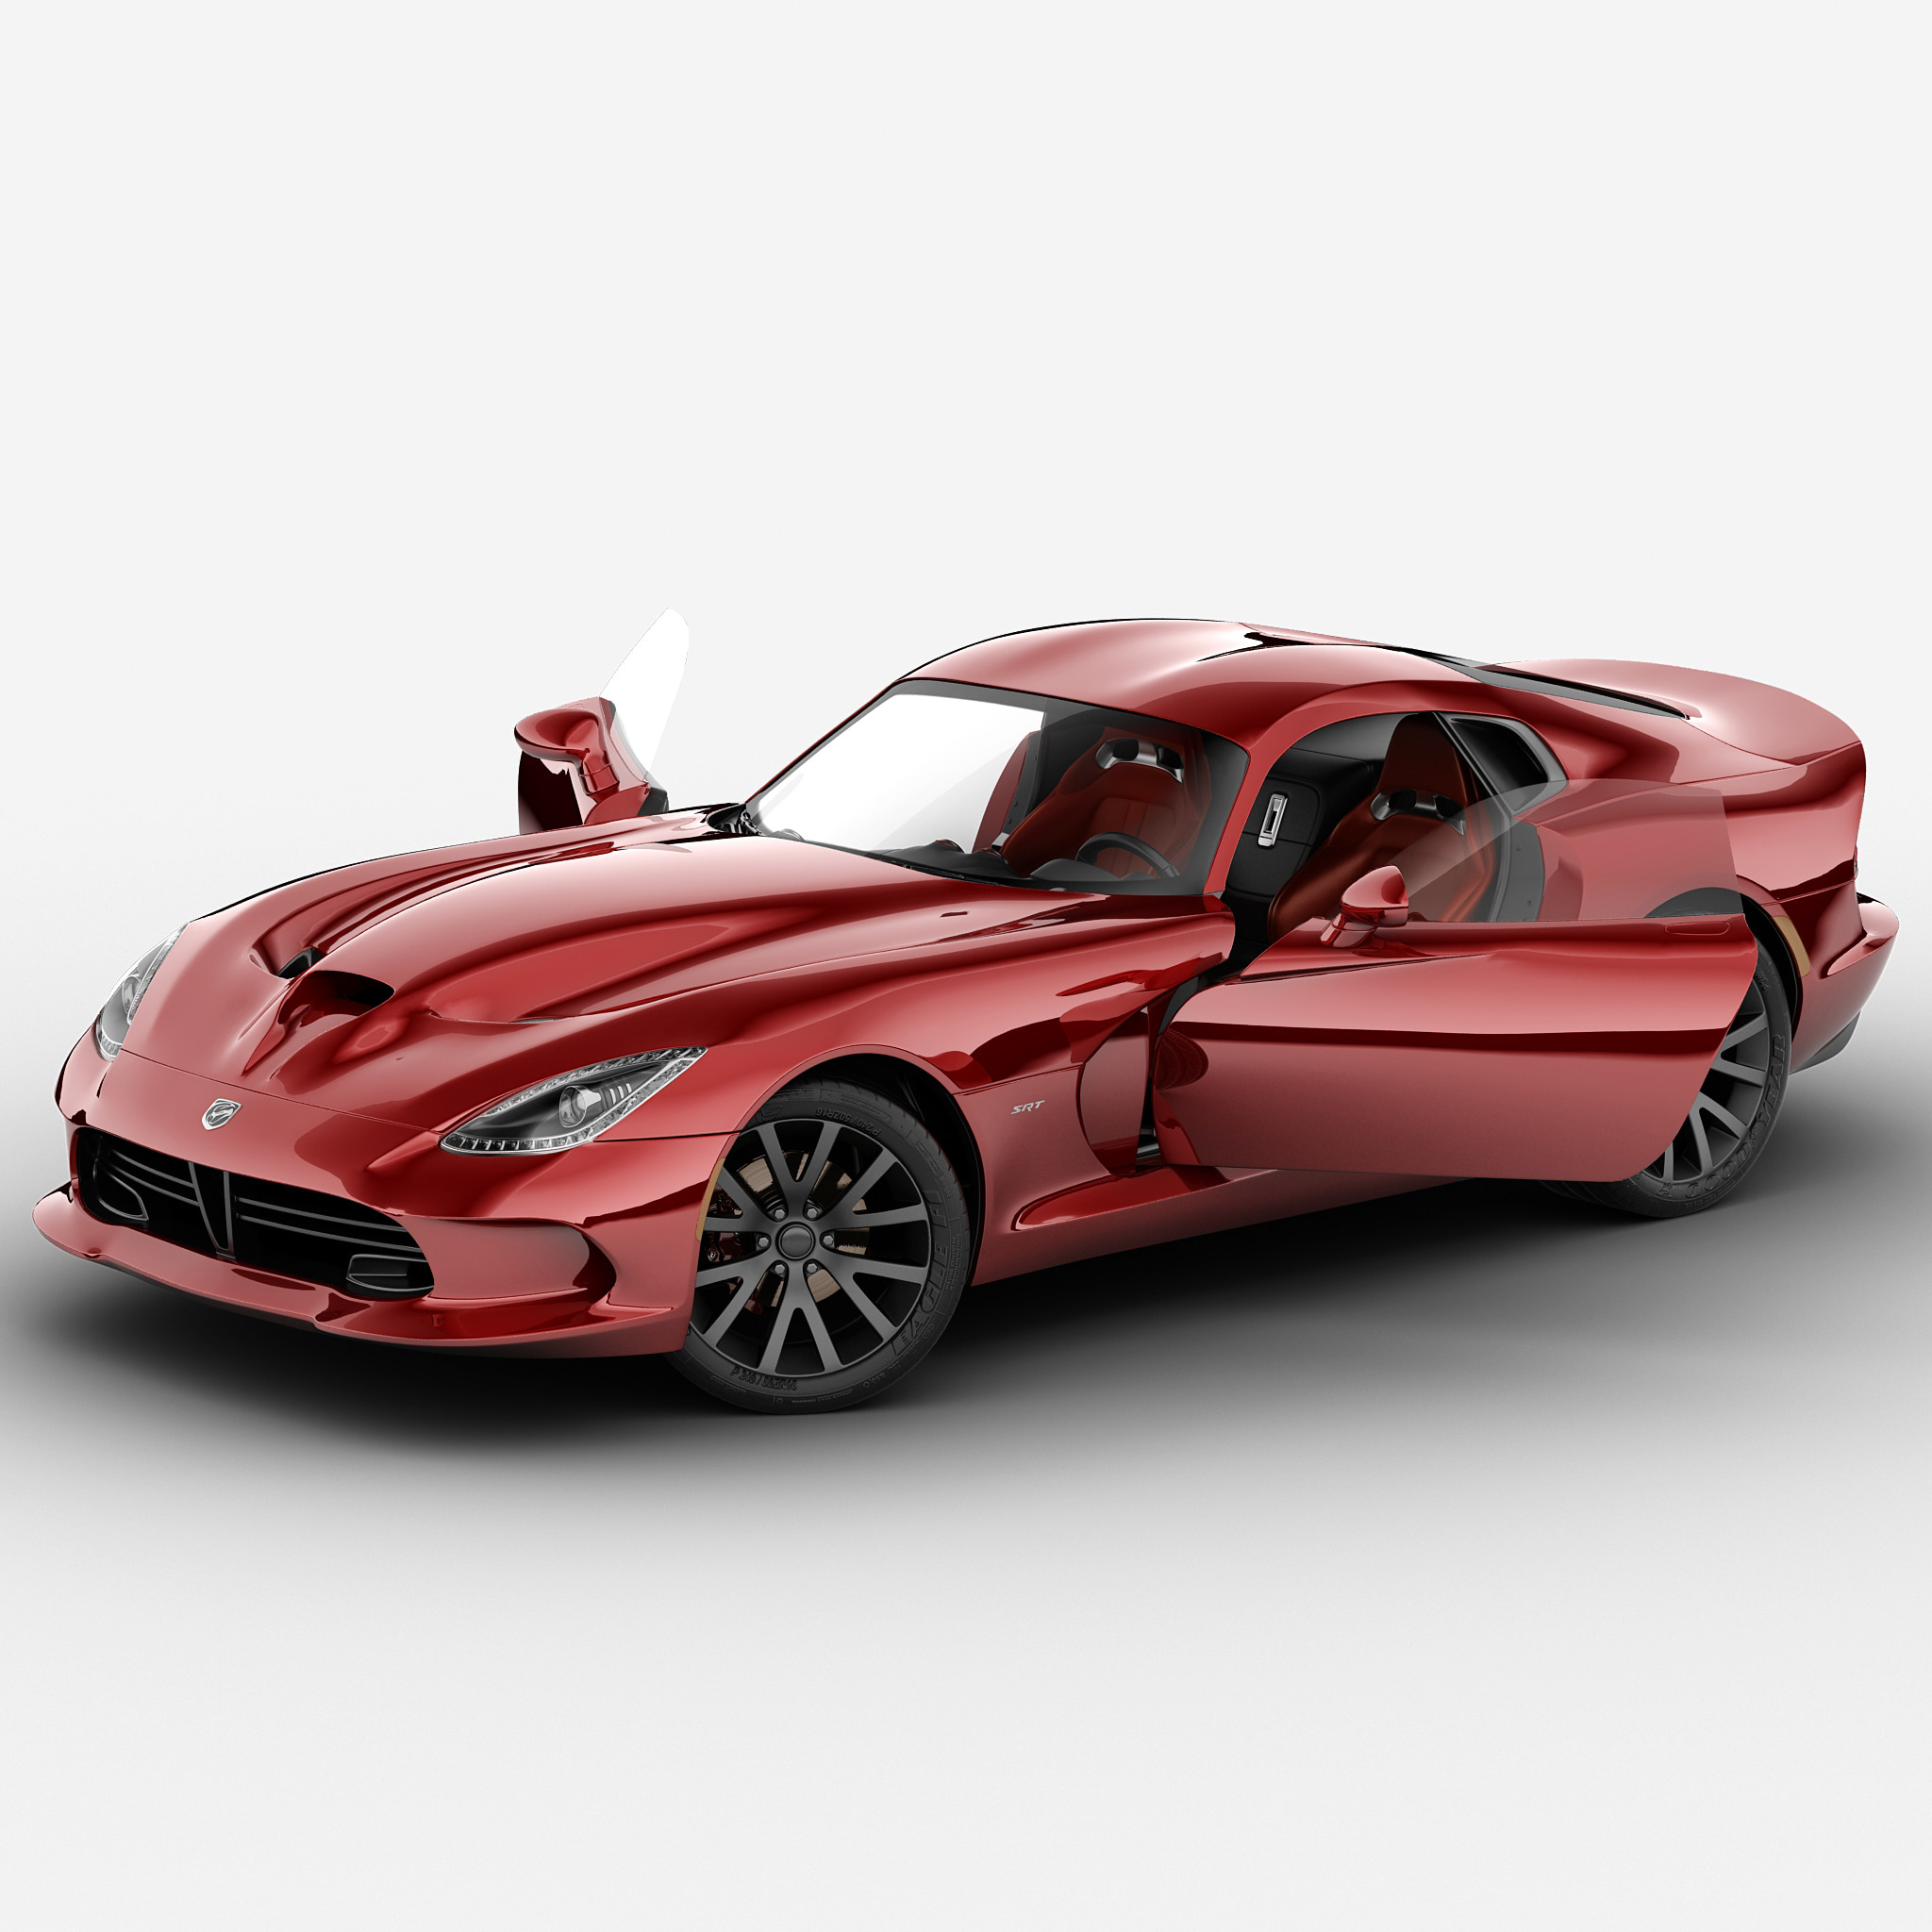 Dodge SRT Viper 2013 Rigged 2_2.jpg